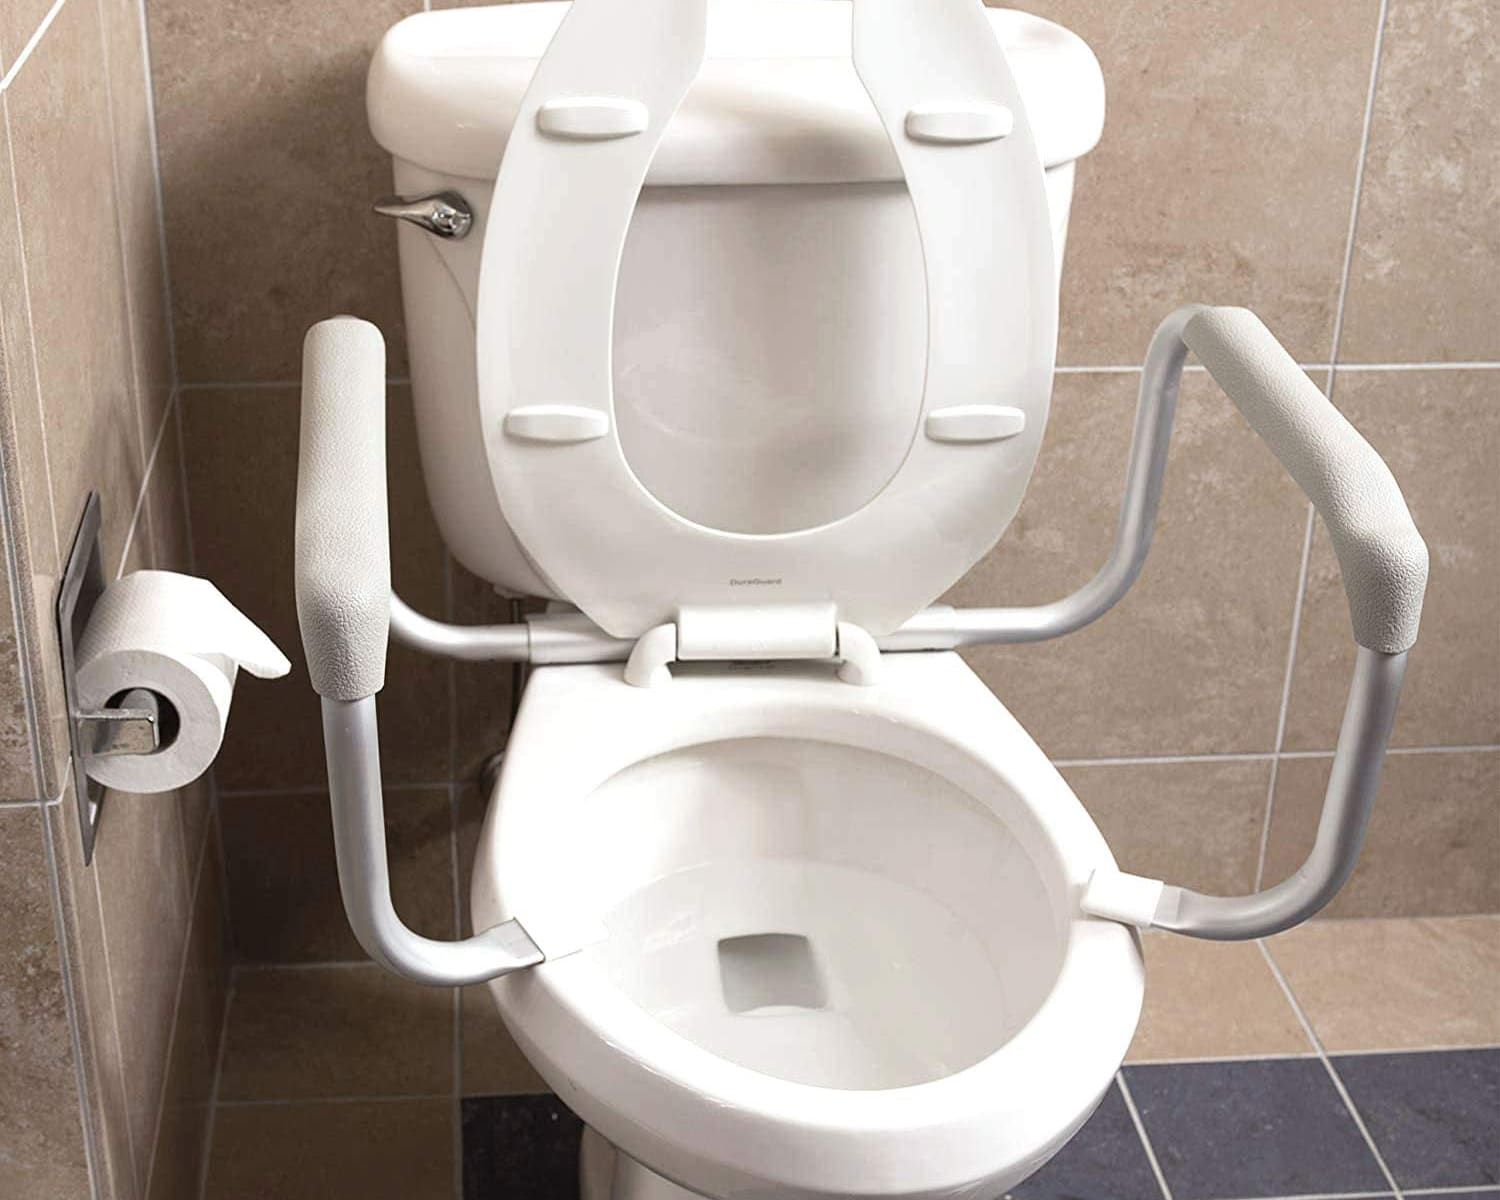 8 Amazing Toilet Safety Rails for Elderlies and Post-Surgery Recoveree's